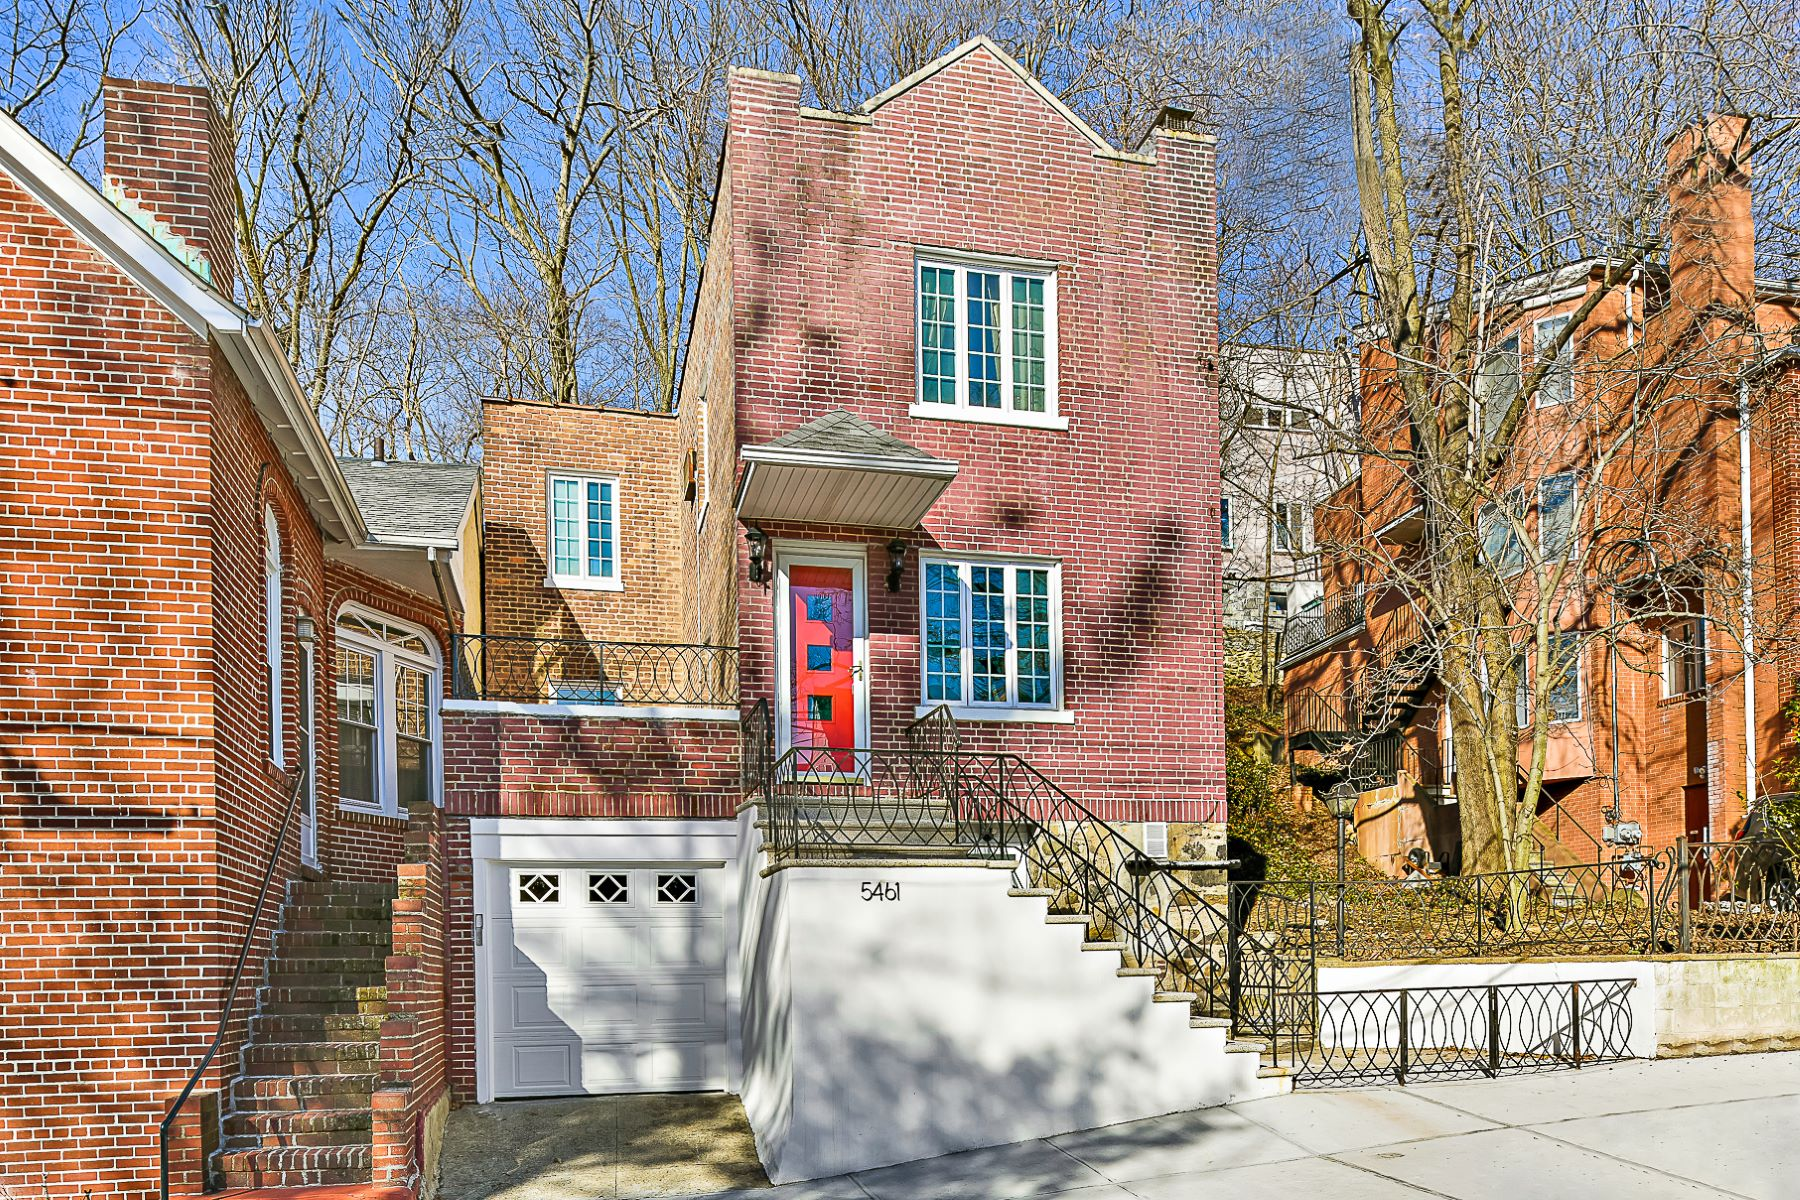 Single Family Home for Active at Move-in Ready, Renovated Charming Red Brick Home 5461 Sylvan Avenue Riverdale, New York 10461 United States